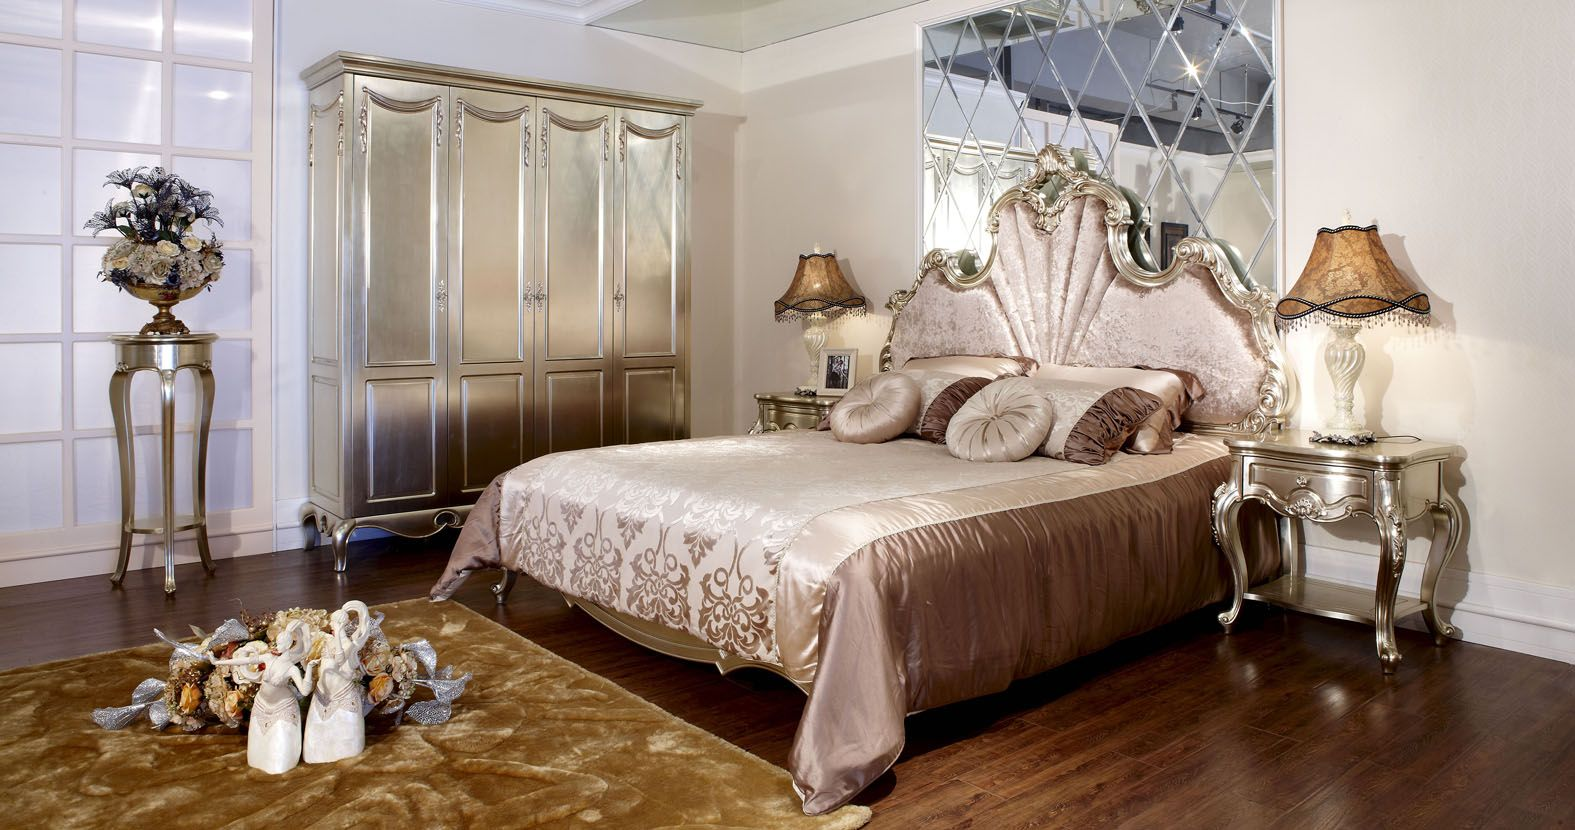 Designer Furniture In French French Provincial Furniture Bedroom Neoclassical